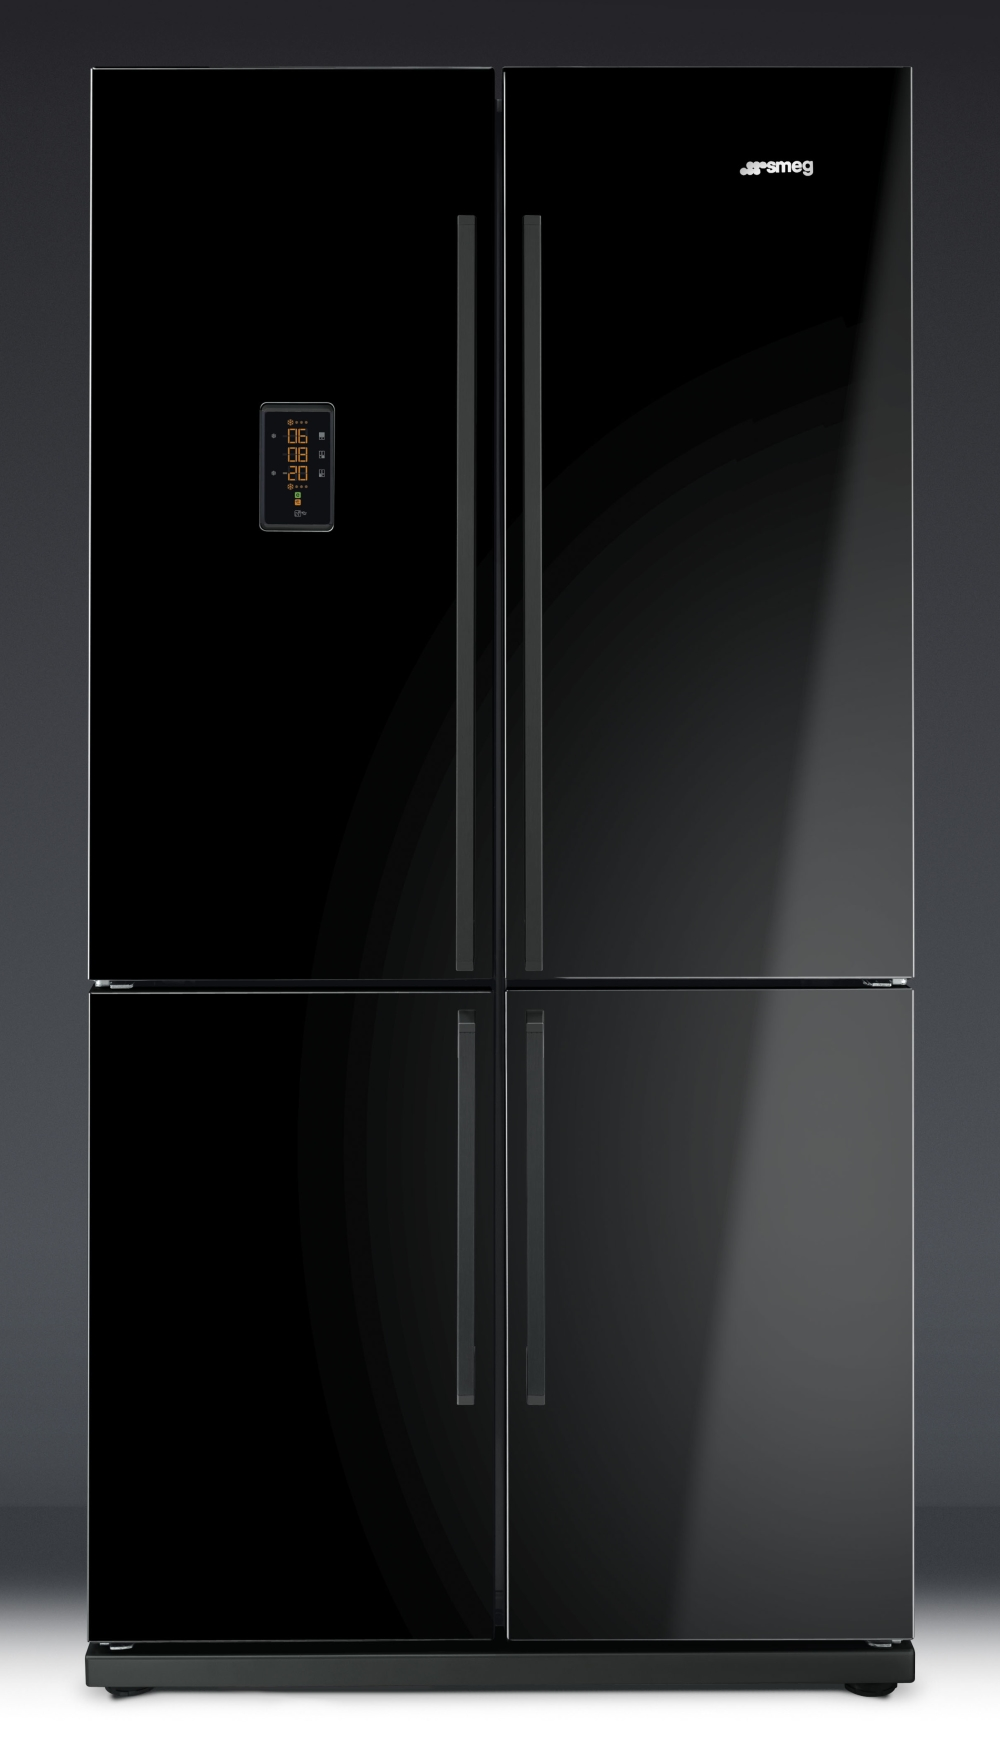 refrigerateur une porte pas cher 3 14177 fq60npe valdiz. Black Bedroom Furniture Sets. Home Design Ideas